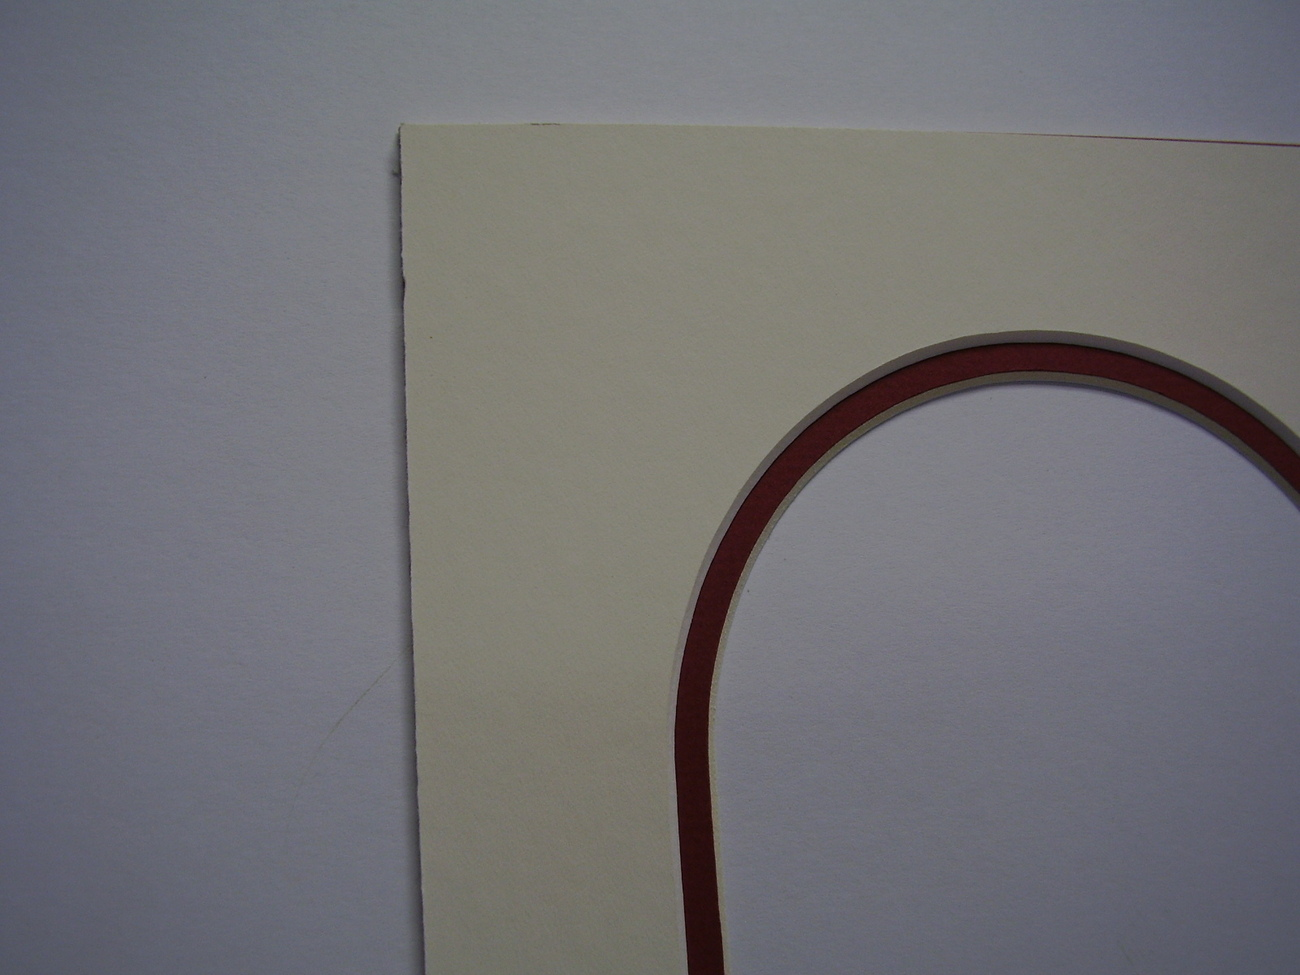 Picture Frame Arch Top Double Mat 8x10 for 5x7 photo  Cream and red